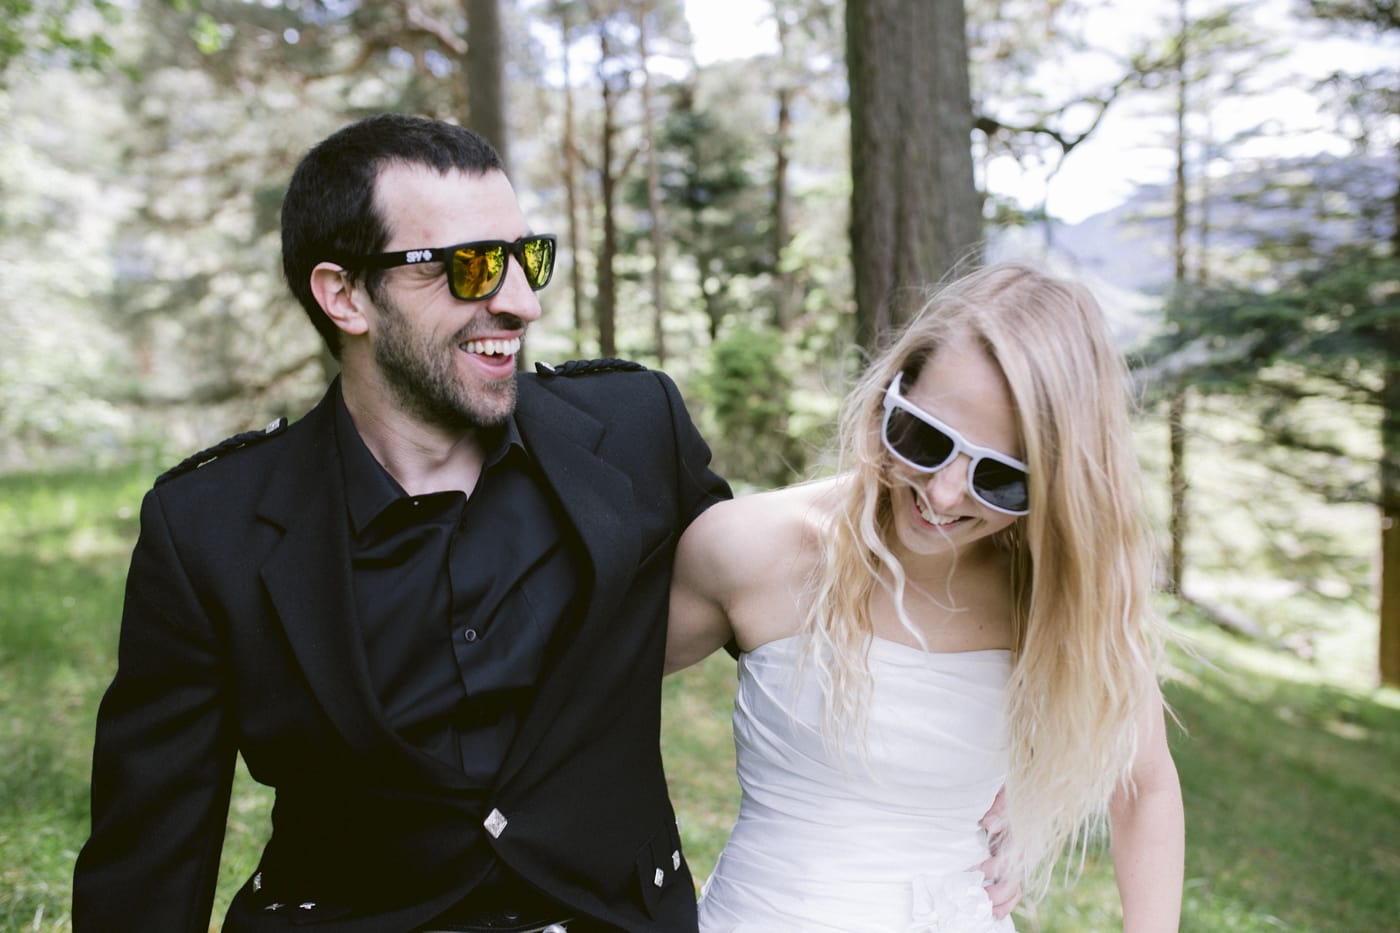 Laughing Together with Glasses in the Forest Portrait Session